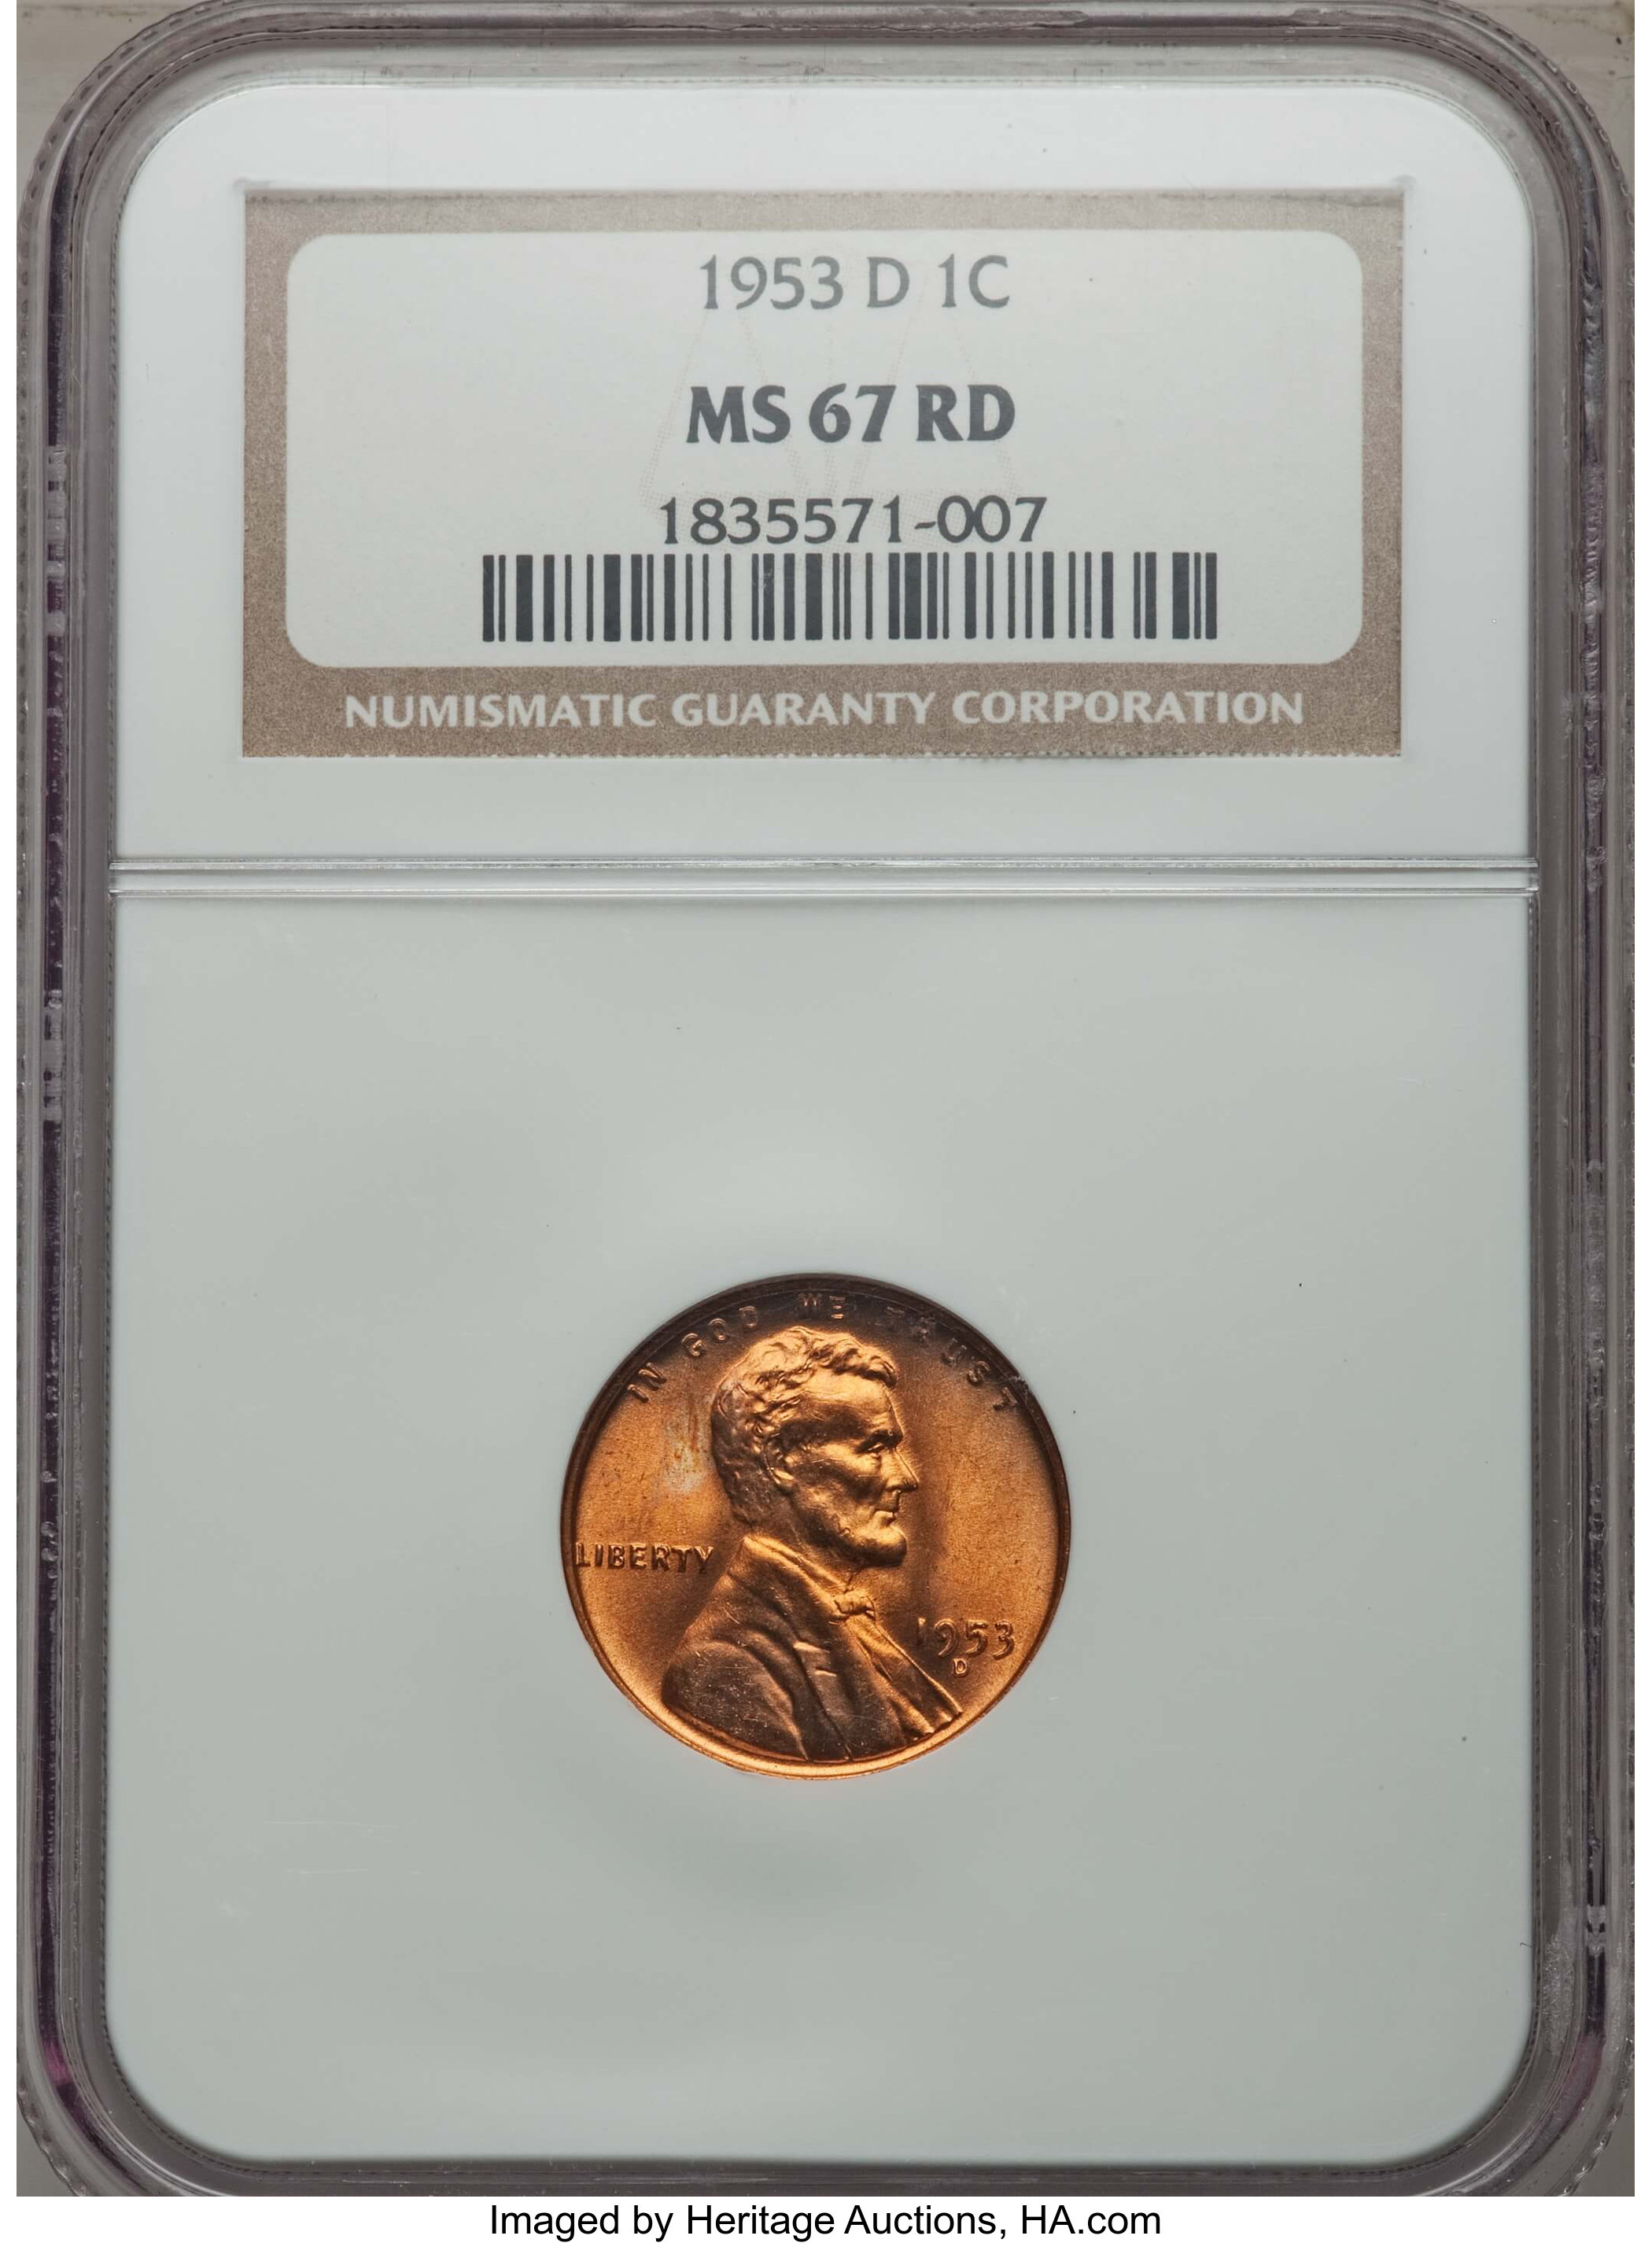 1992 D Lincoln 1c NGC Certified MS 67 RD